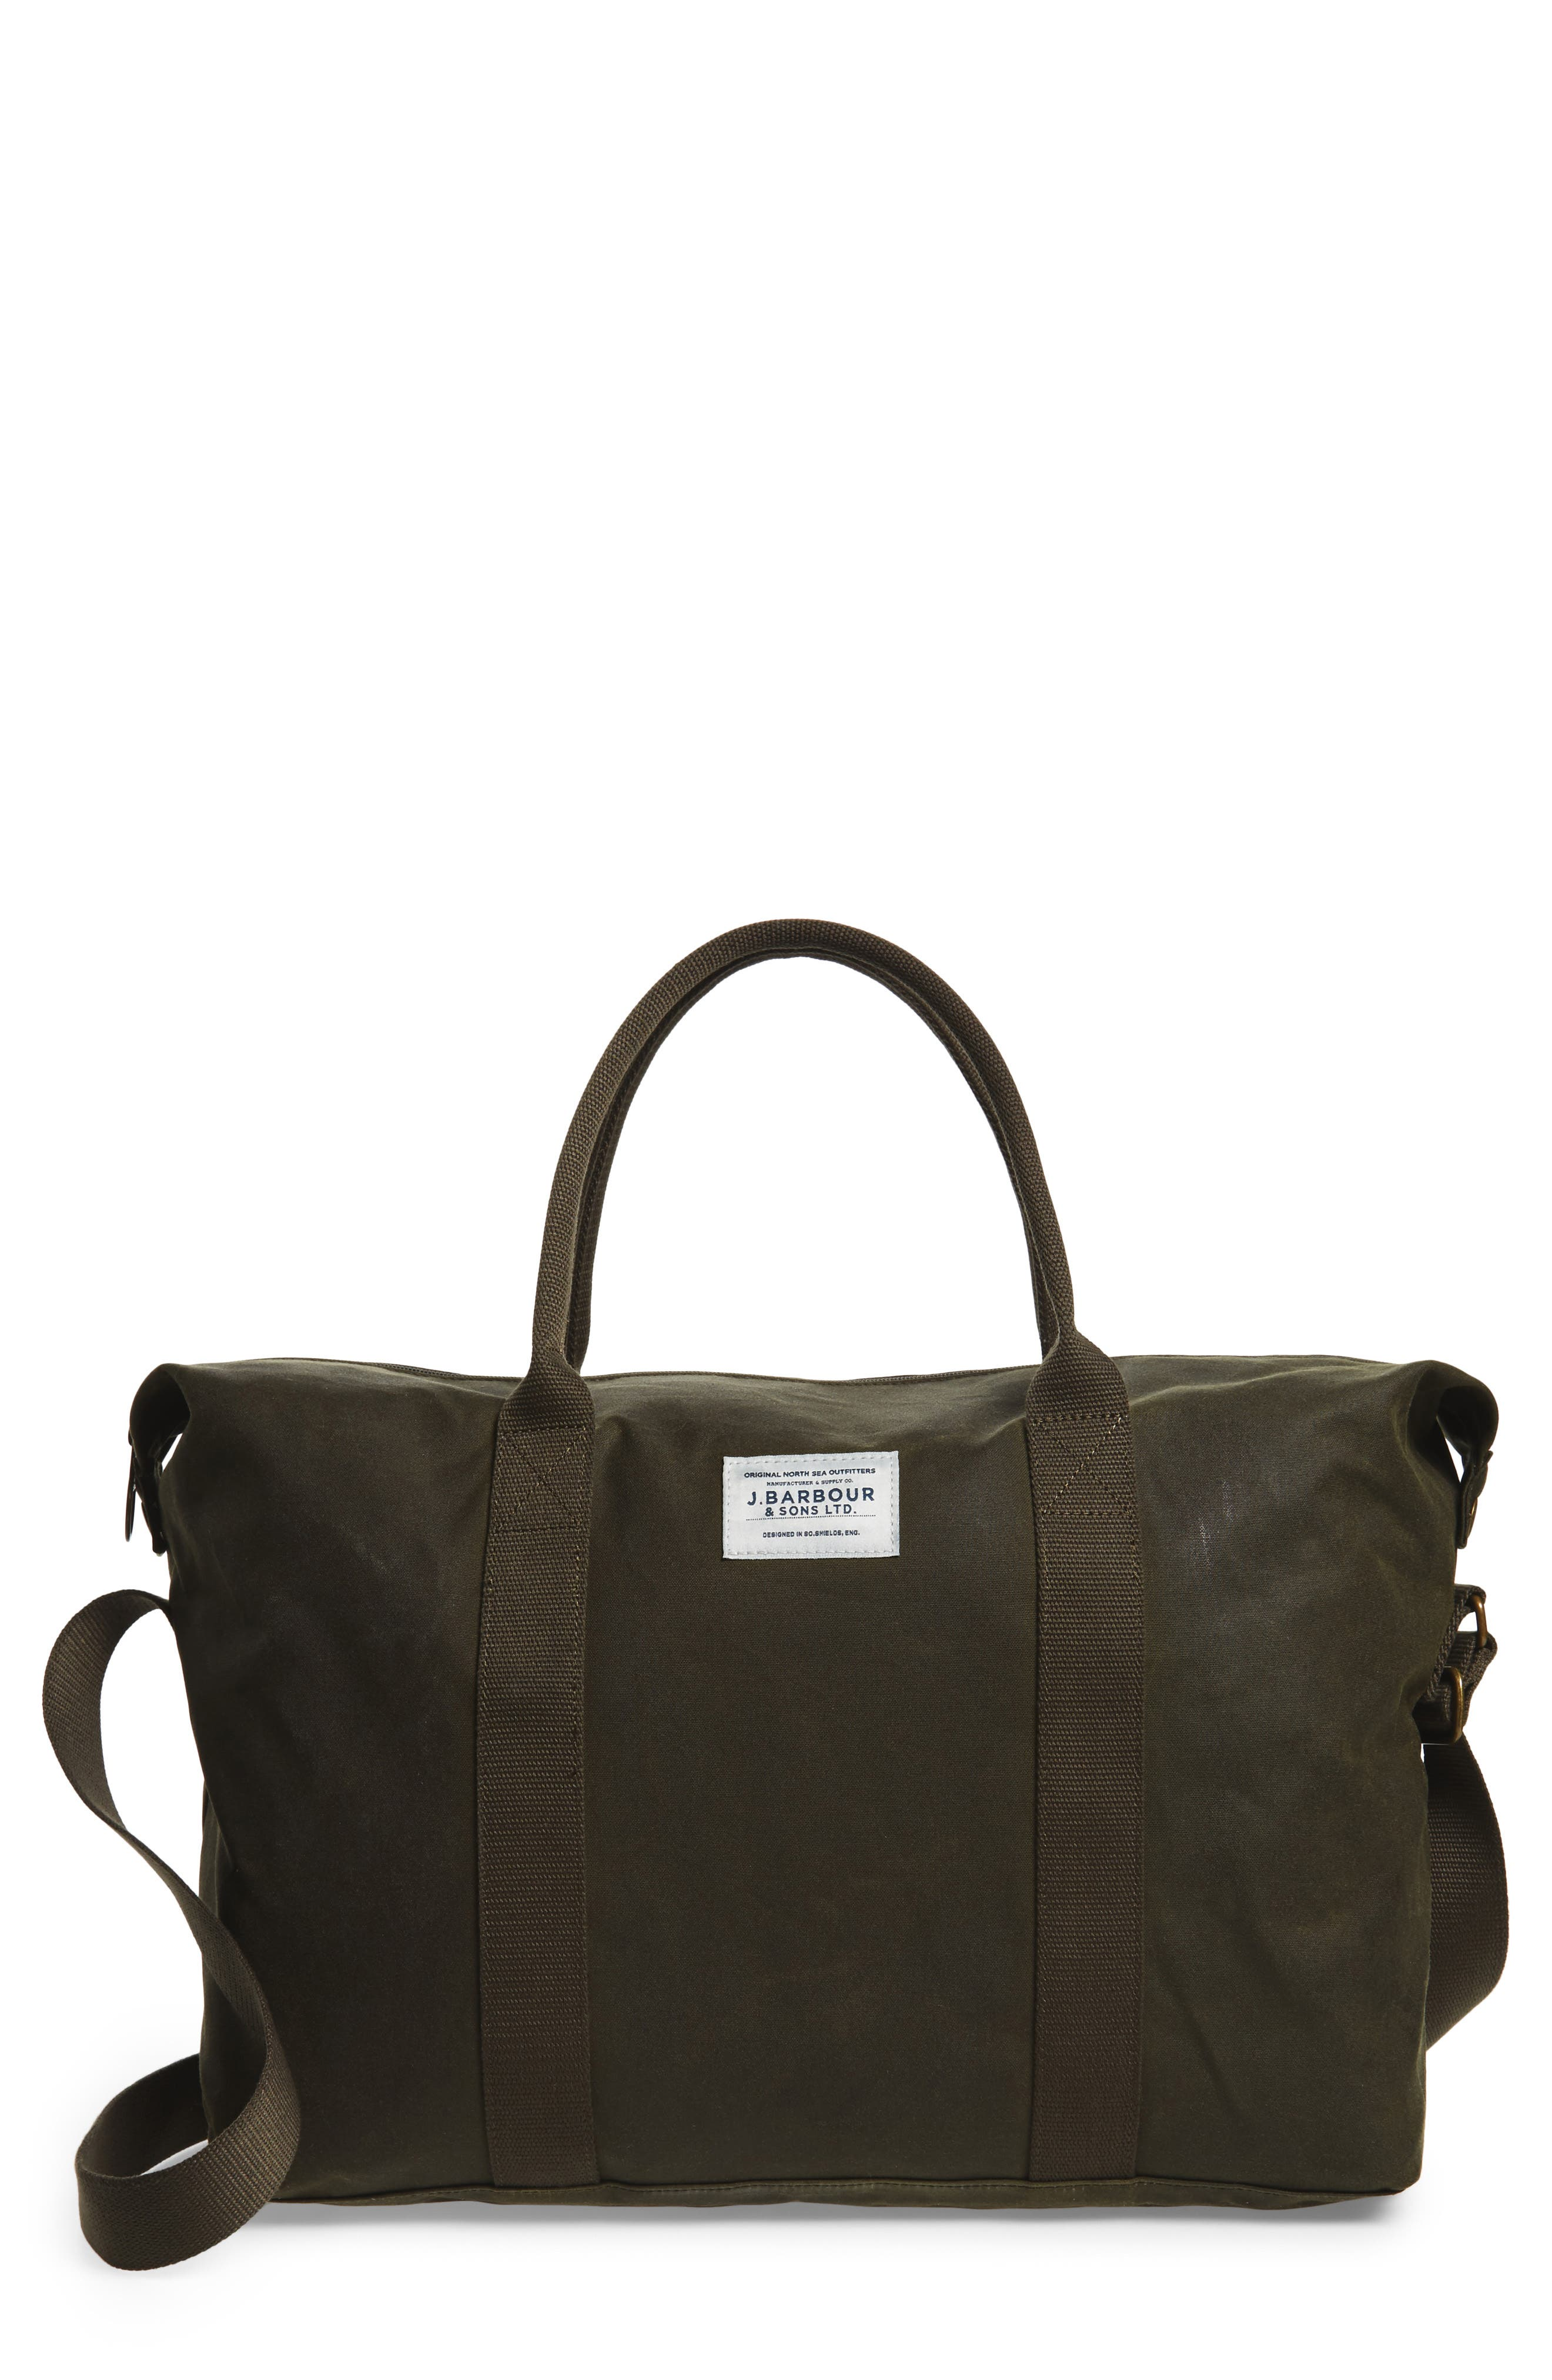 Alternate Image 1 Selected - Barbour Archive Holdall Bag